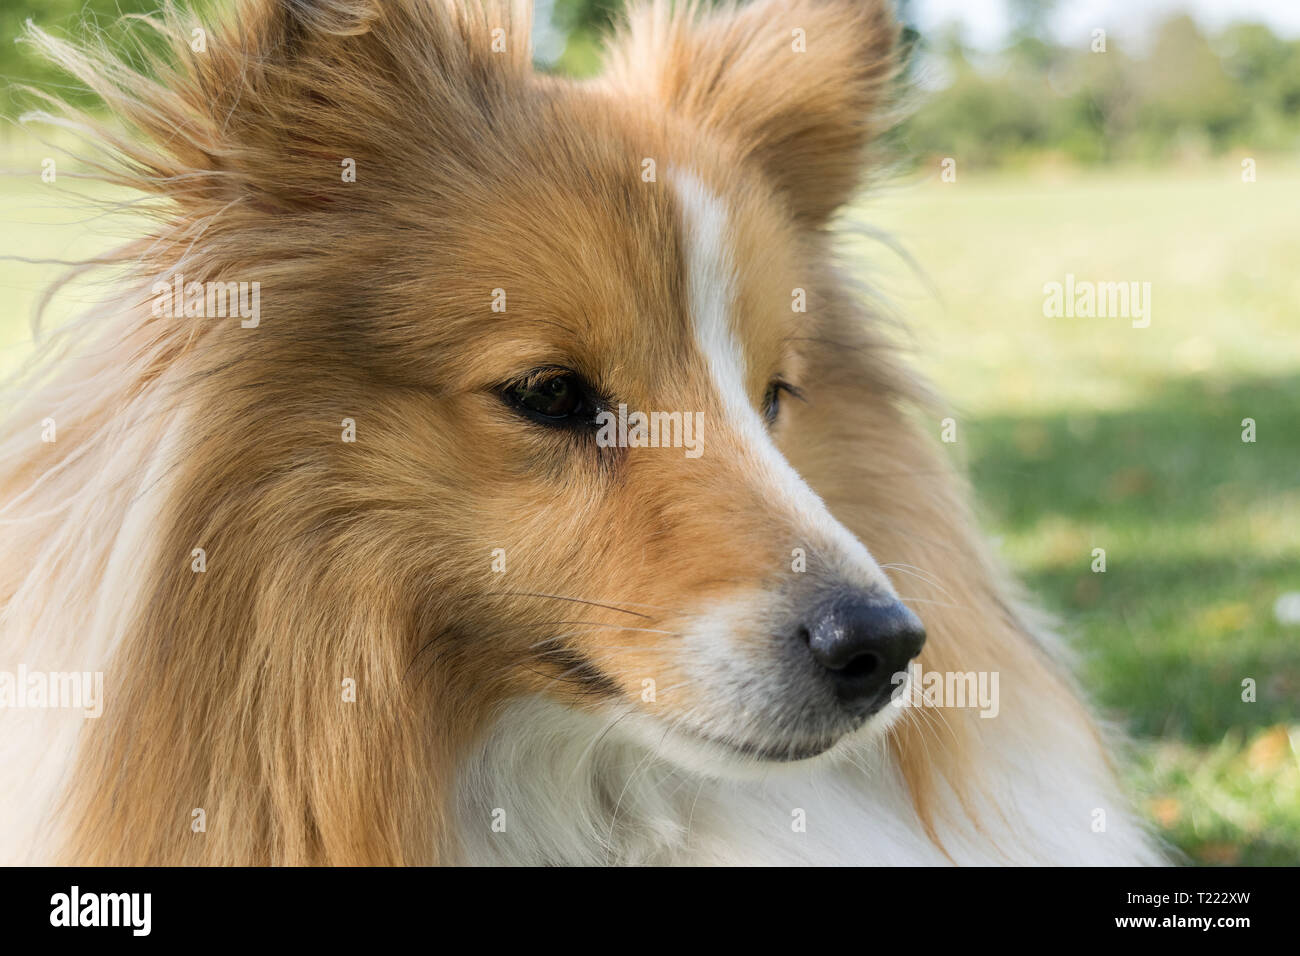 Sheltie portrait looking to the right of frame - Stock Image